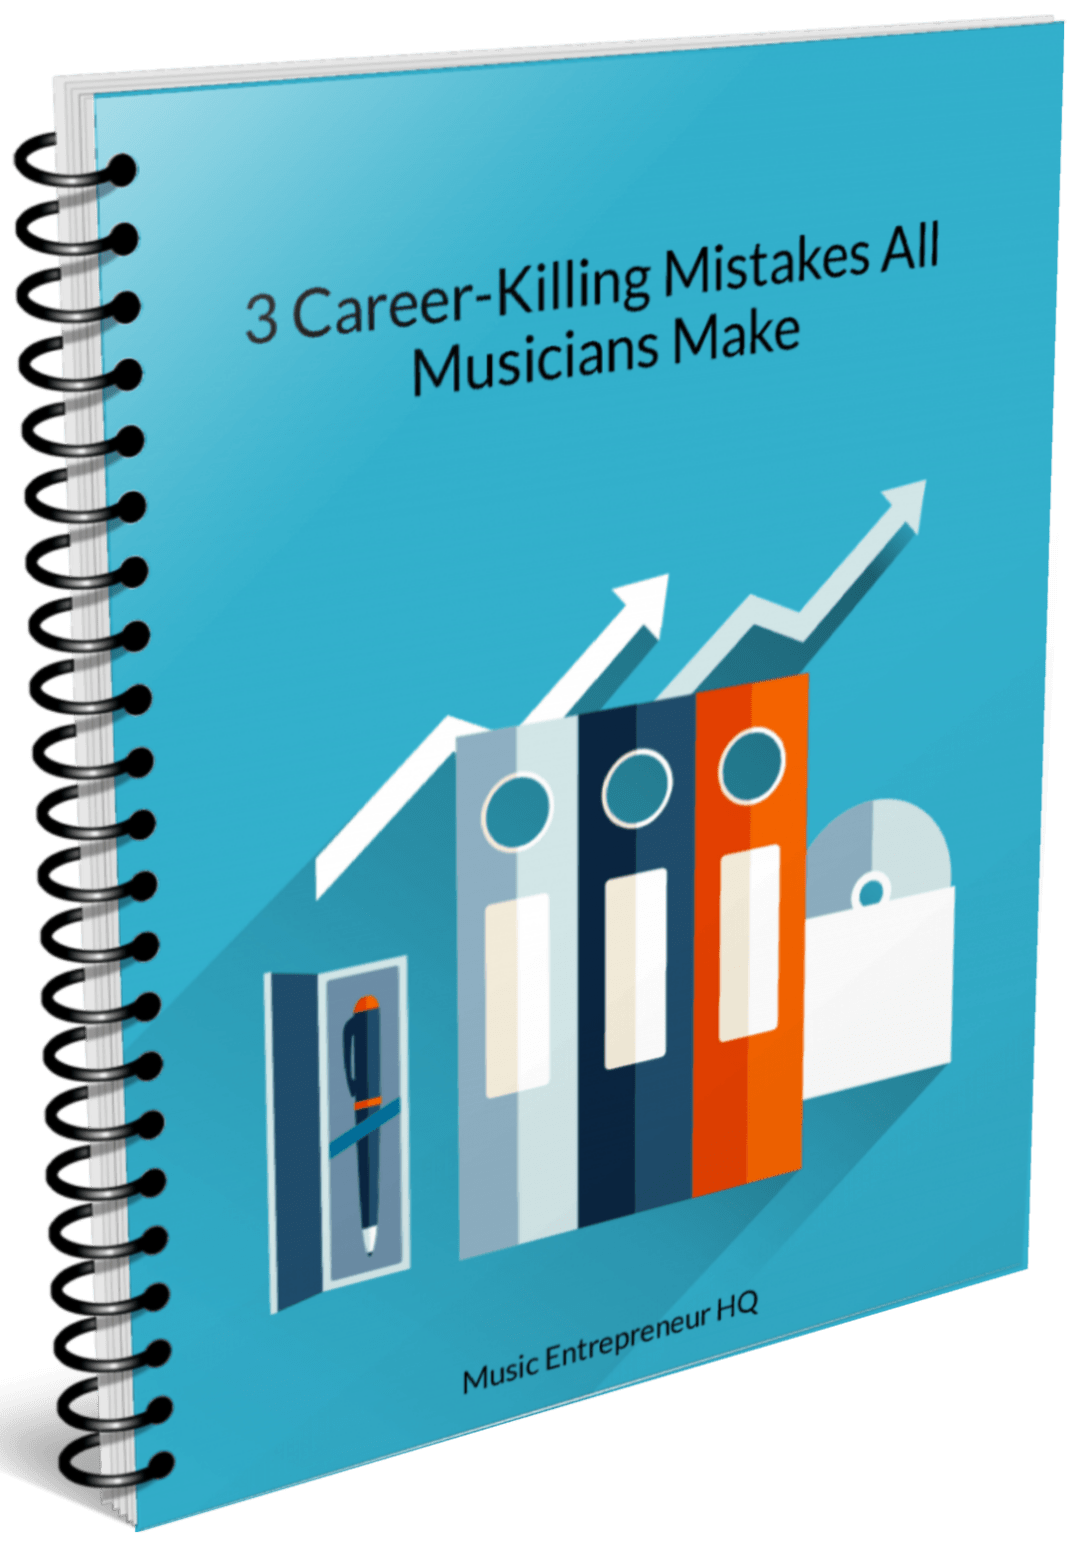 3 Career-Killing Mistakes All Musicians Make